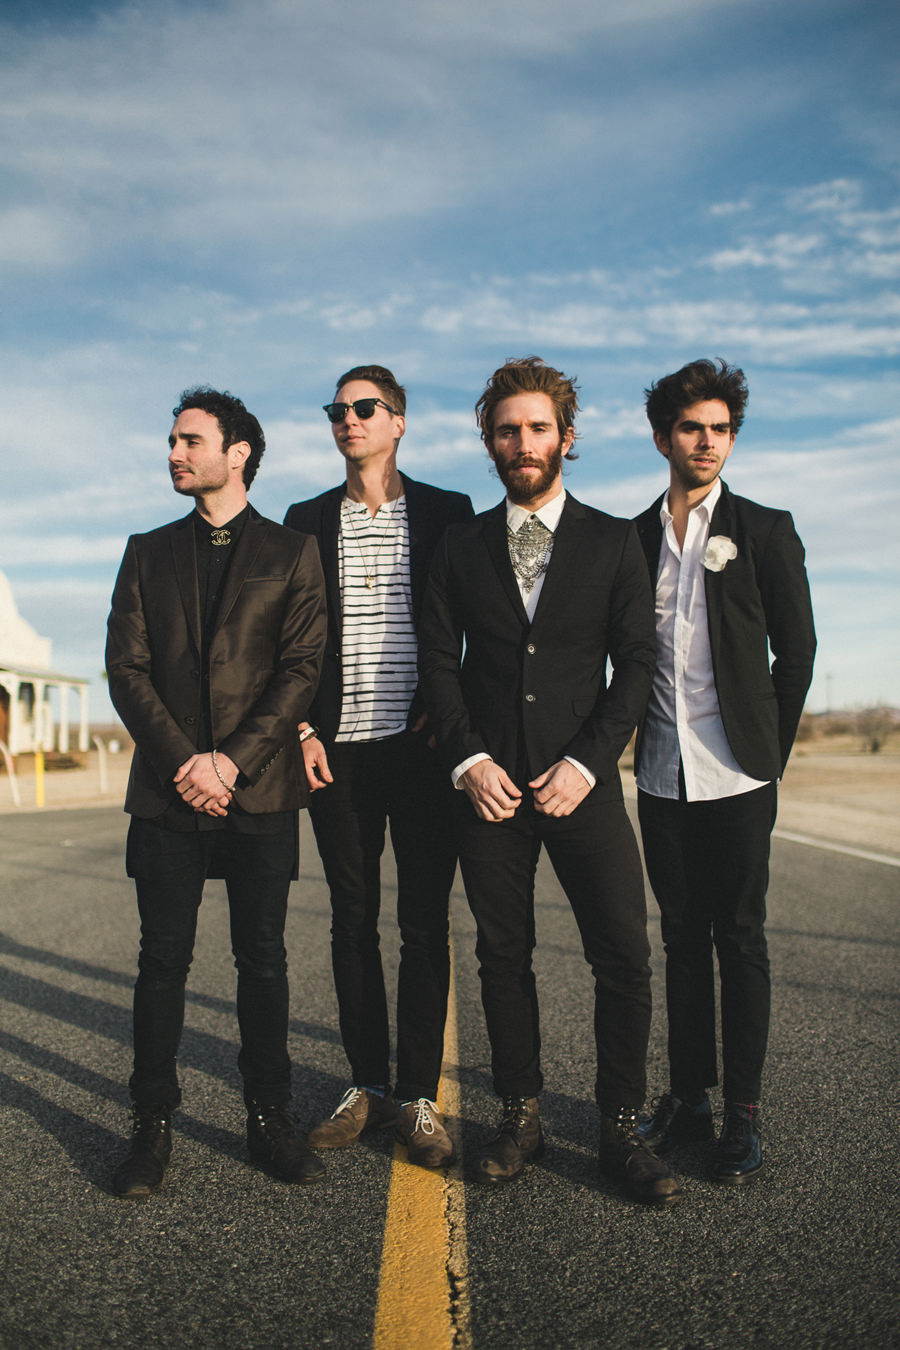 1-smallpools-lovetap-promo-album-art-2015-anna-lee-media-tour-photographer